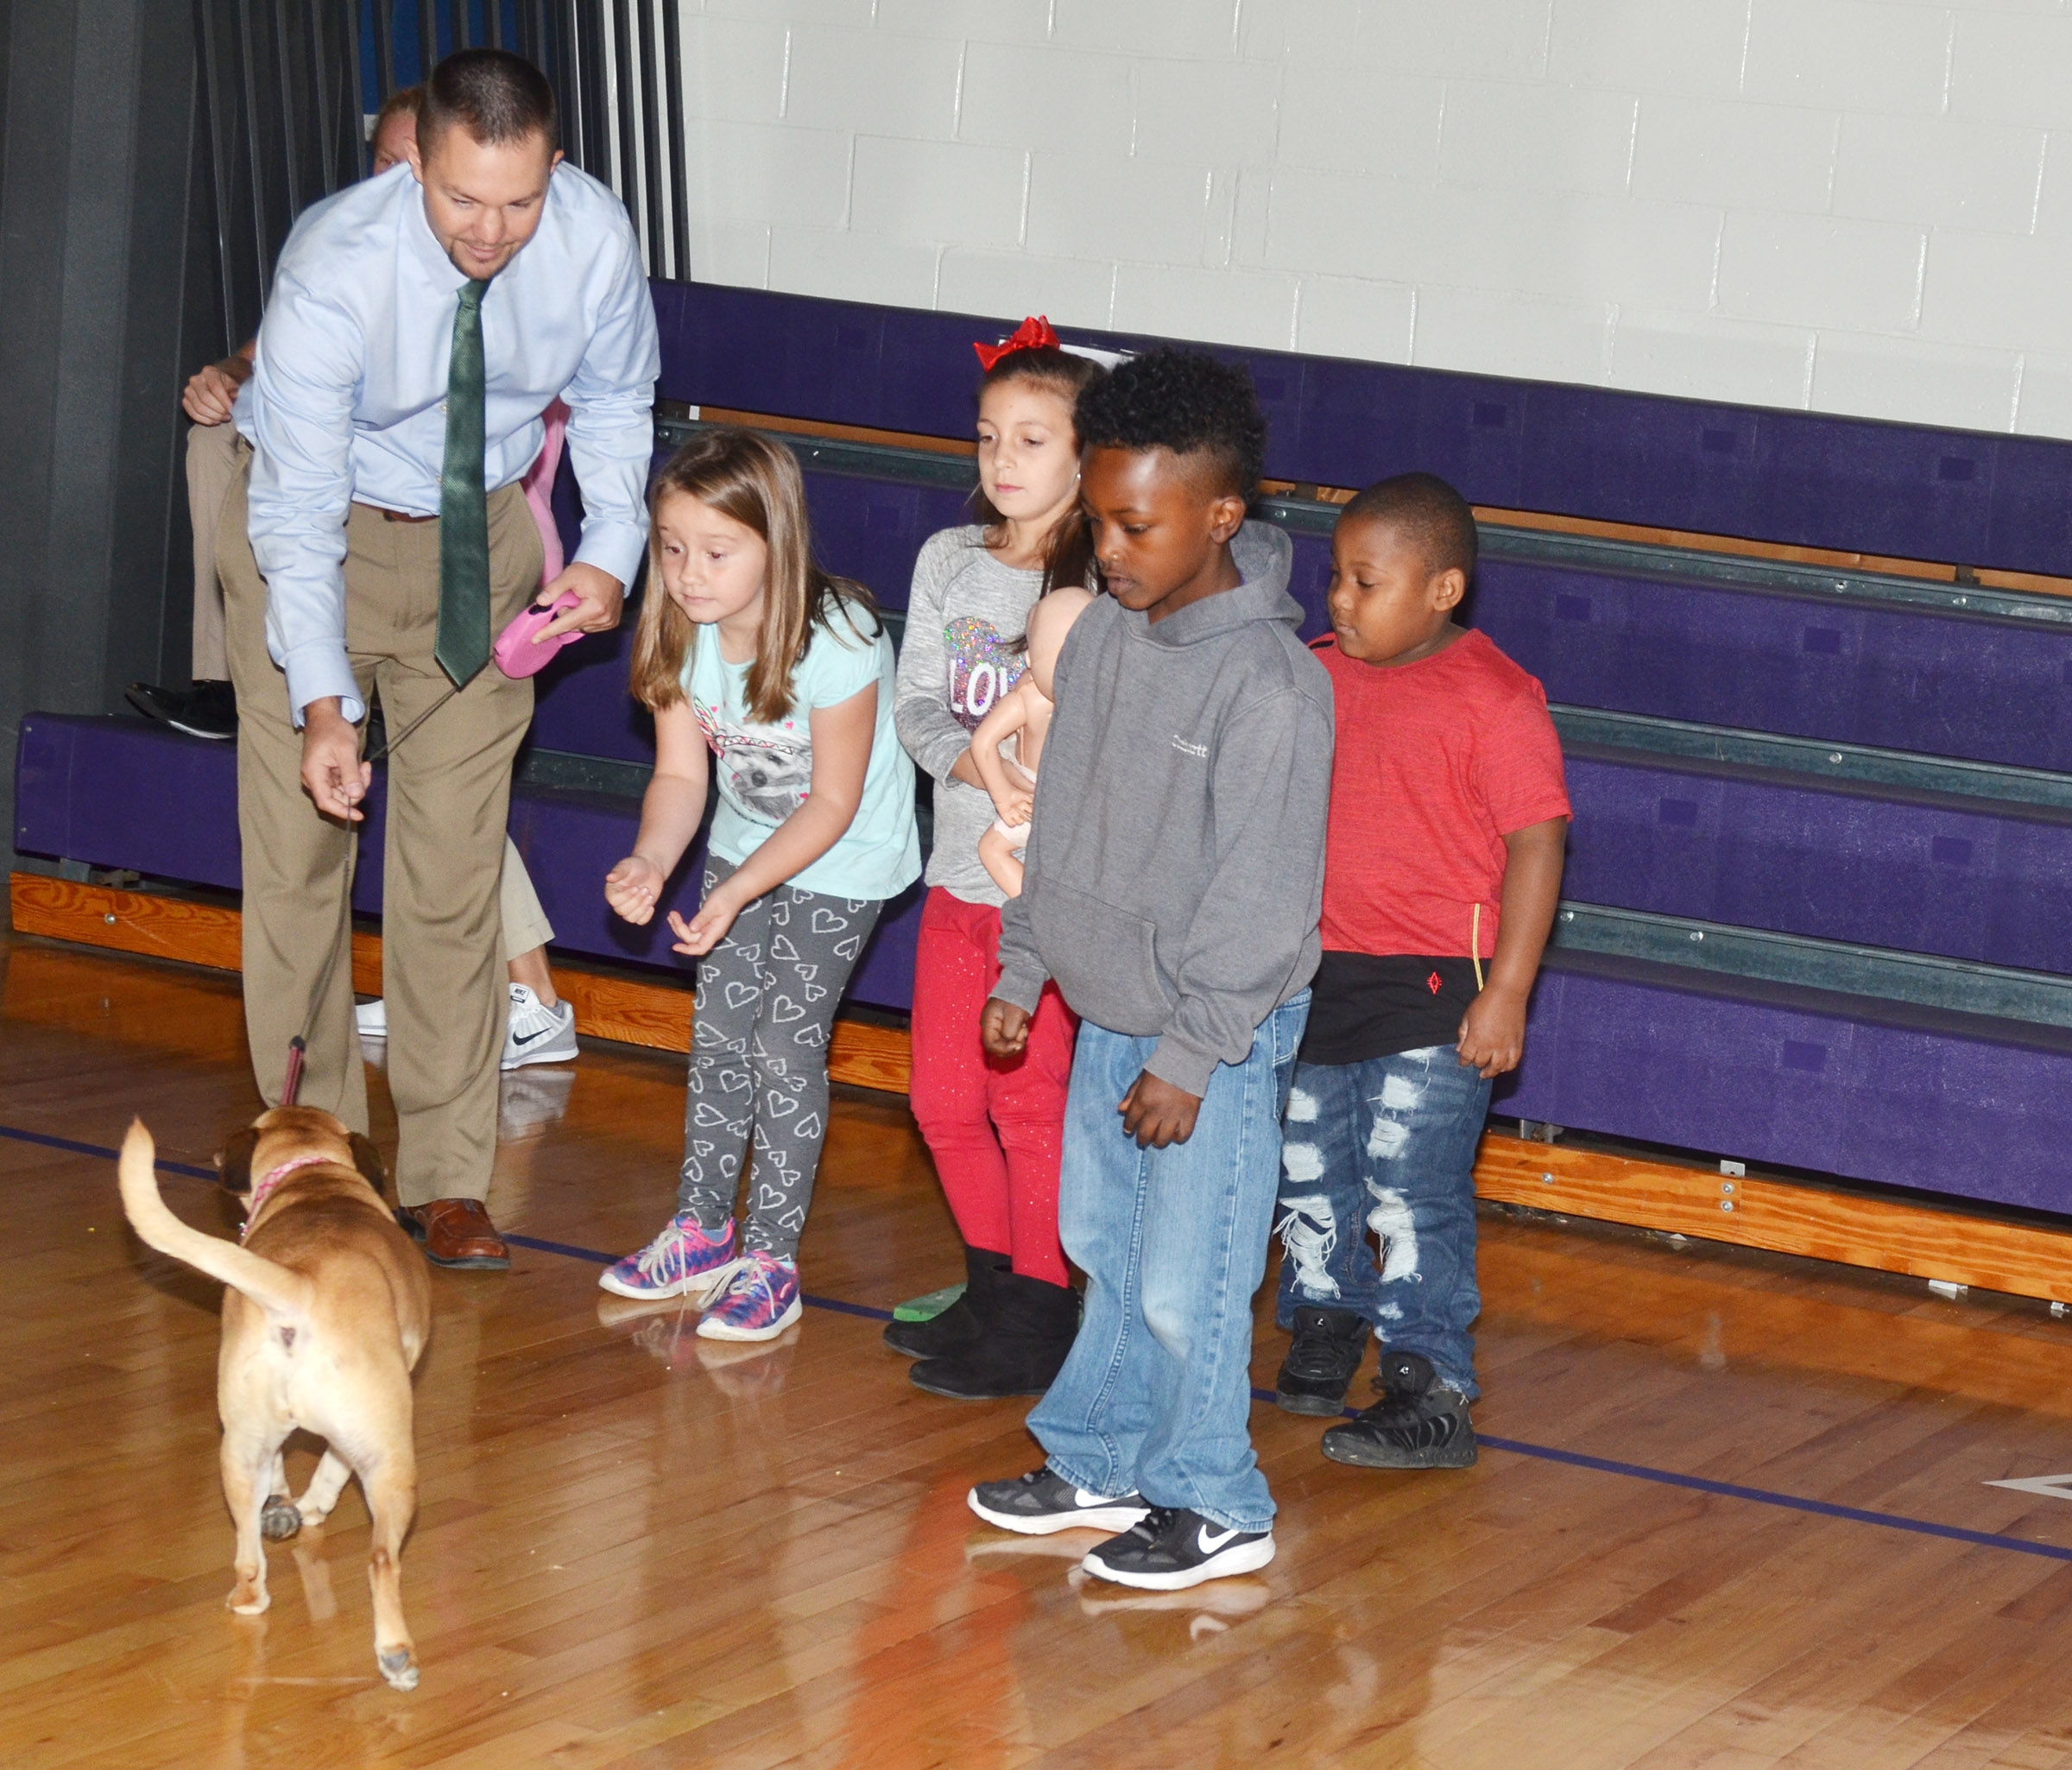 CES Assistant Principal Weston Jones waits with CES students, from left, first-grader Natalee Shaw, second-graders Lillian Martin and Drelynn Hollins and first-grader Malachi Conner and the family dog as they show students the proper way to leave a home in case of a fire.